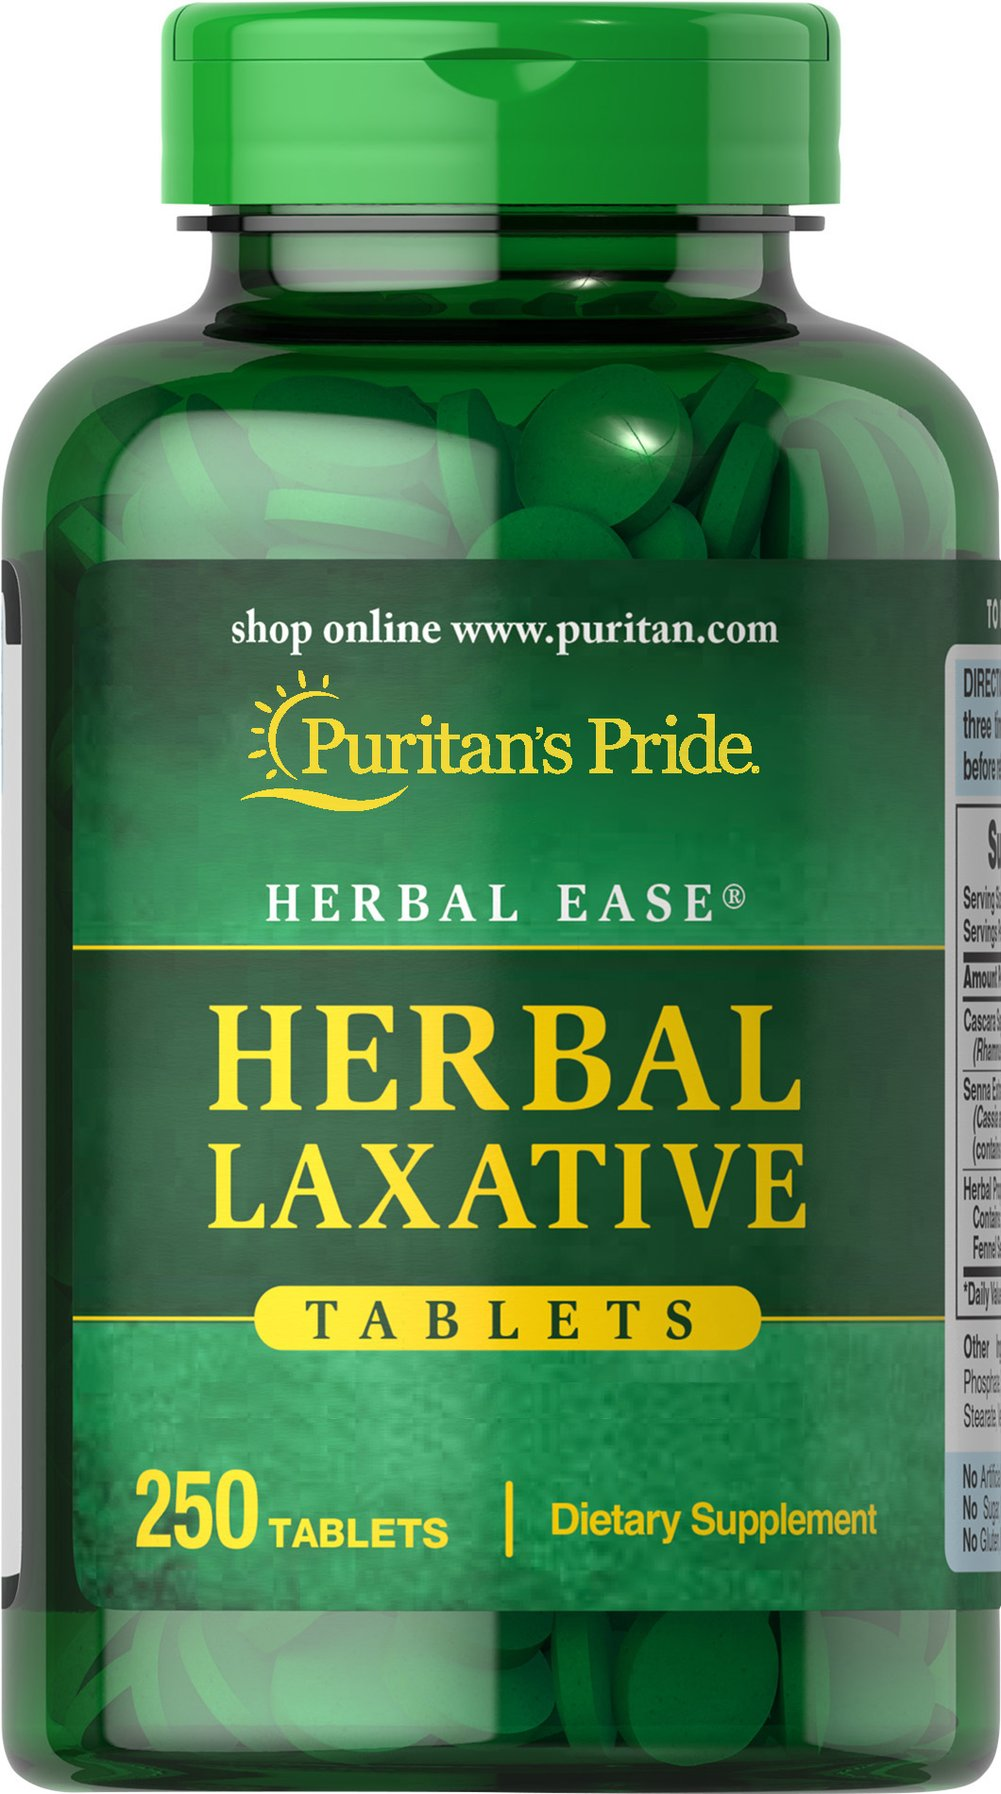 Herbal Laxative <p>Herbal Laxative Tablets is based on traditional use for the relief of occasional constipation.** Our formula brings together holistic properties to help promote regularity.** Herbal Laxative Tablets contain no harsh synthetics, so you can be assured of gentle, yet efficient, cleansing.**</p><p></p><p>Also available in Capsules. See items 2180, 2183 and 2185.</p> 250 Tablets  $24.99